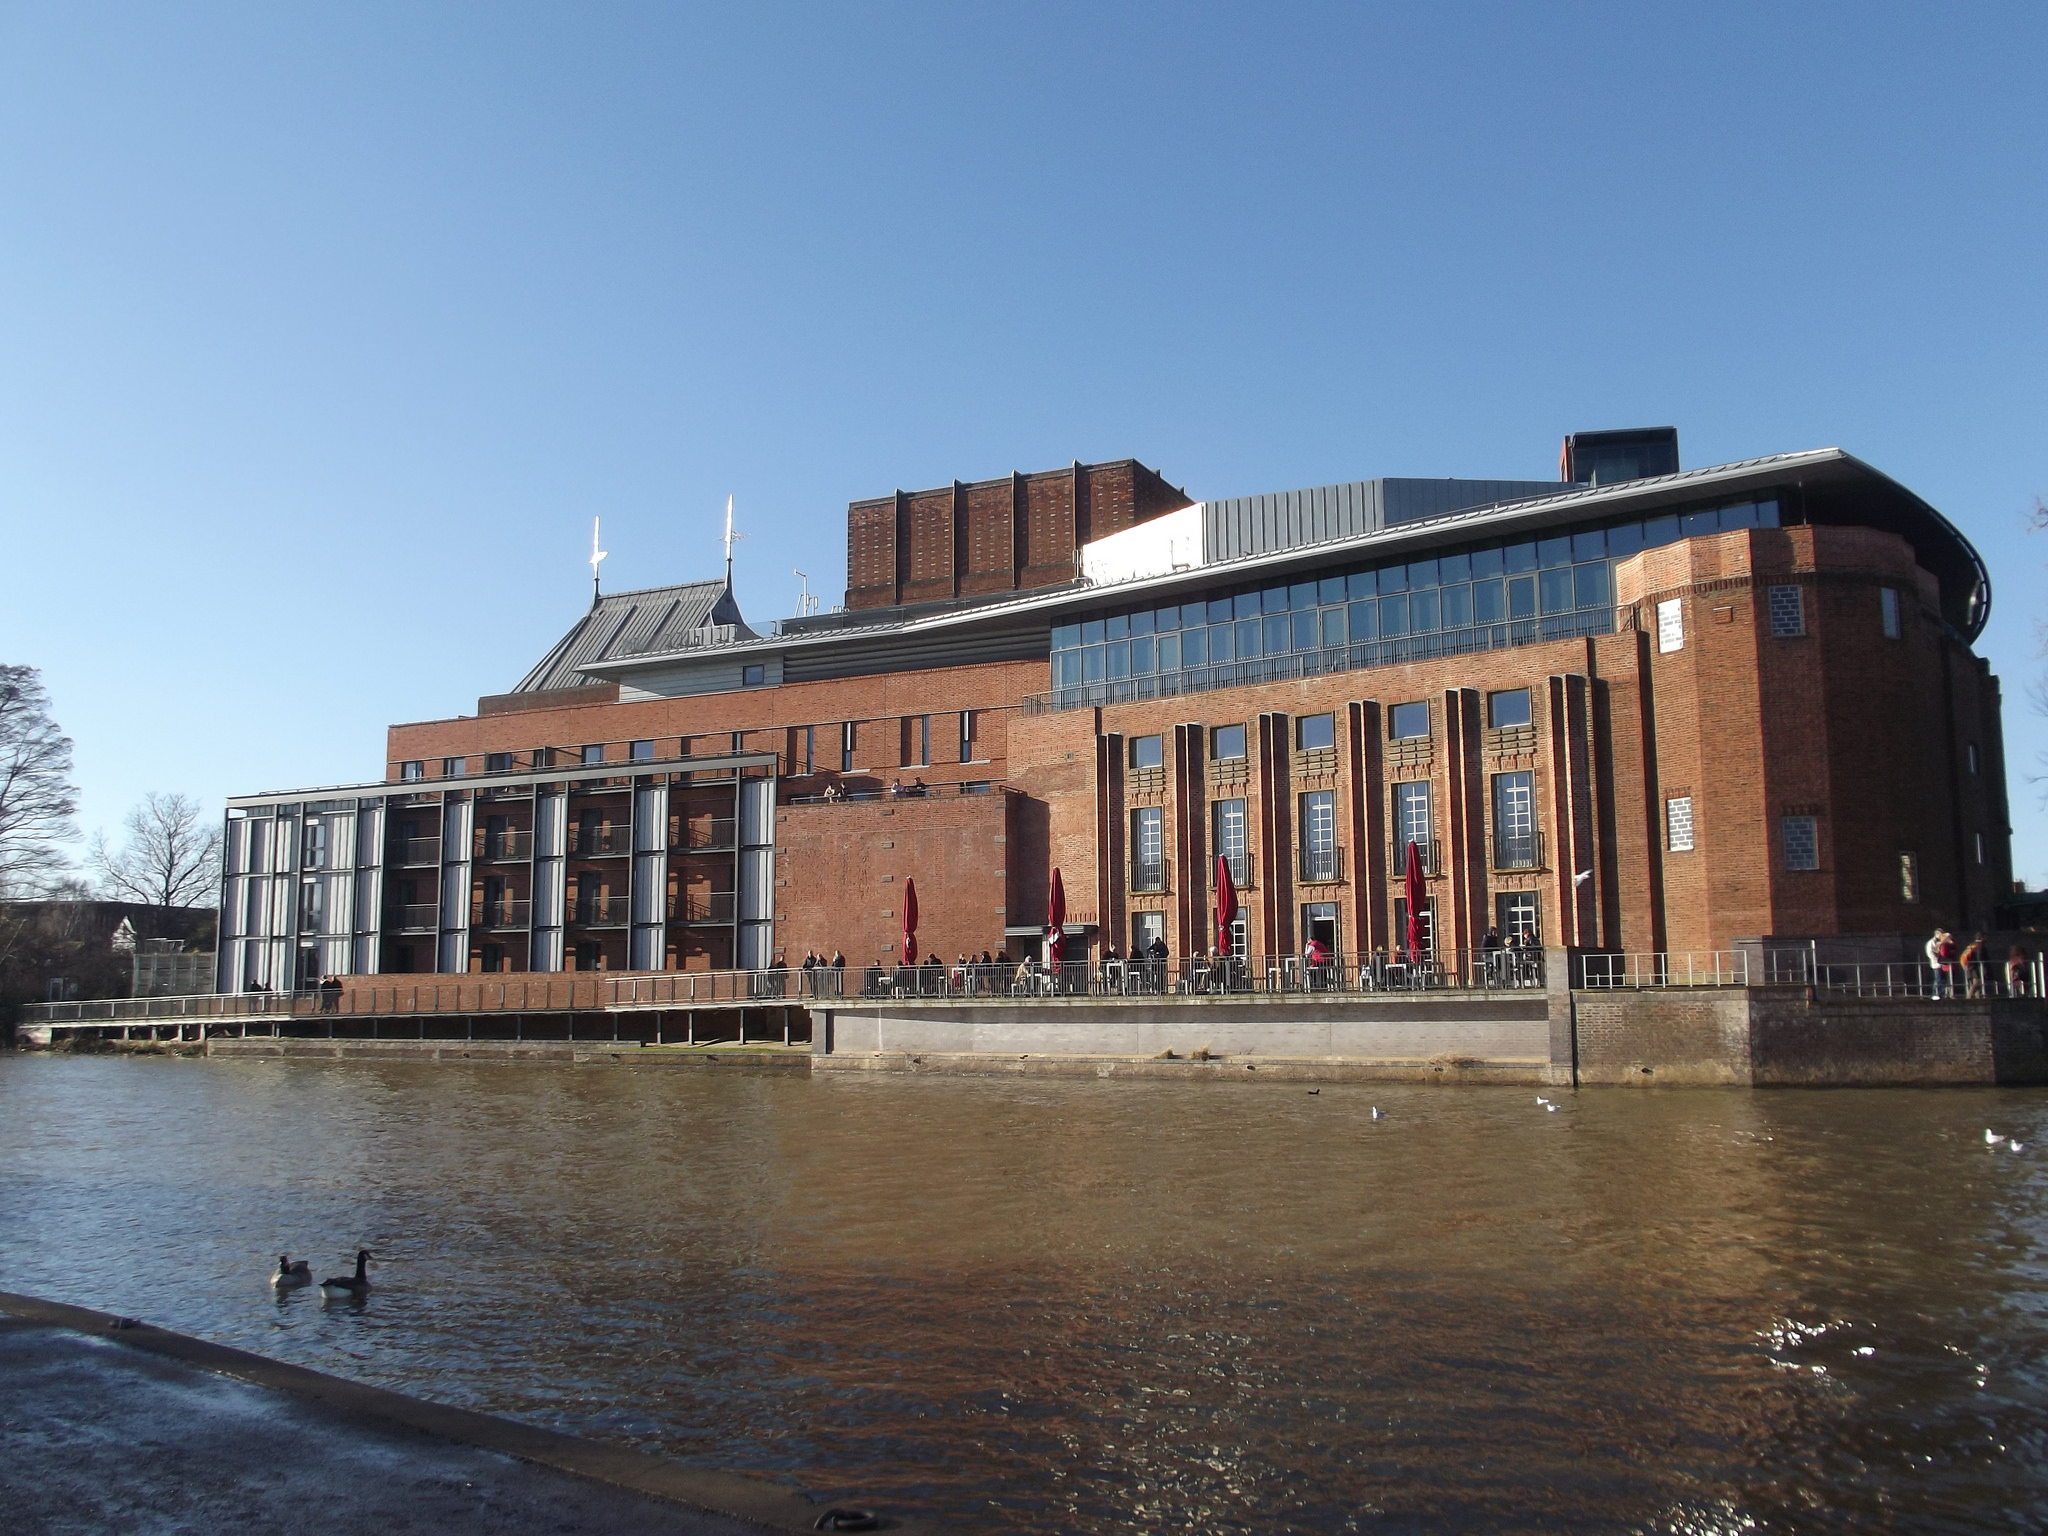 Royal shakespeare theatre public building in stratford for The stratford